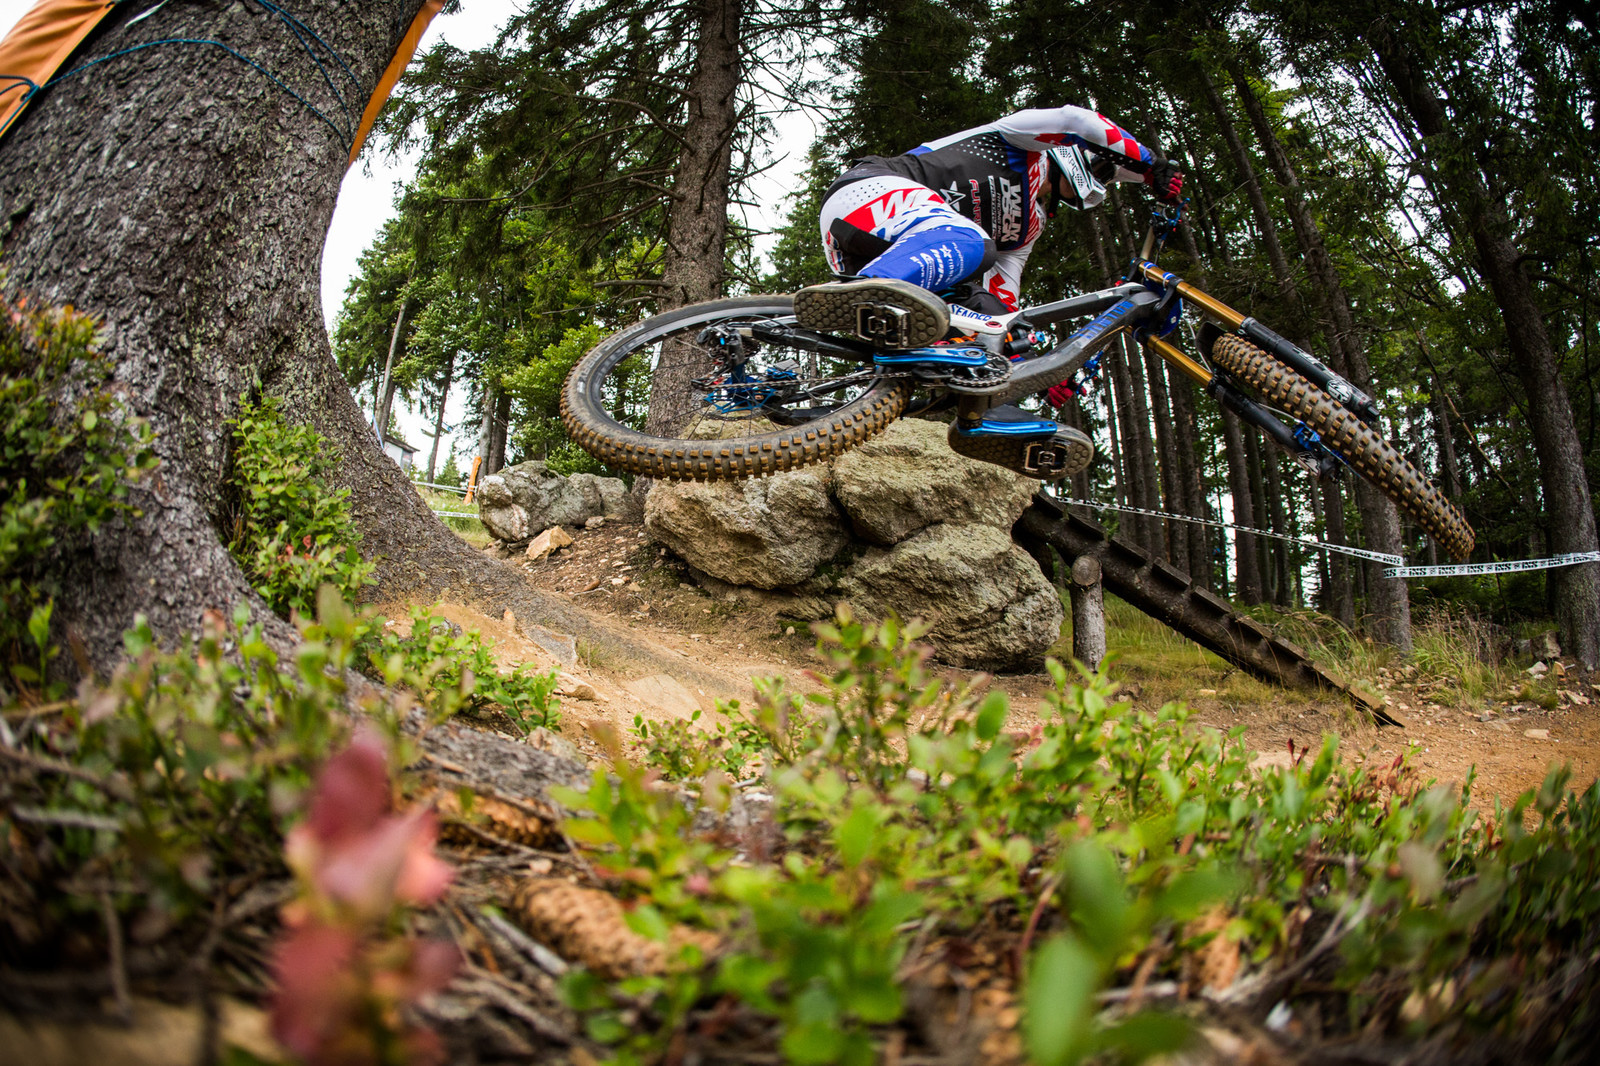 2019 iXS European Downhill Cup Spicak - Race Gallery - 2019 iXS European Downhill Cup Spicak - Race Gallery - Mountain Biking Pictures - Vital MTB